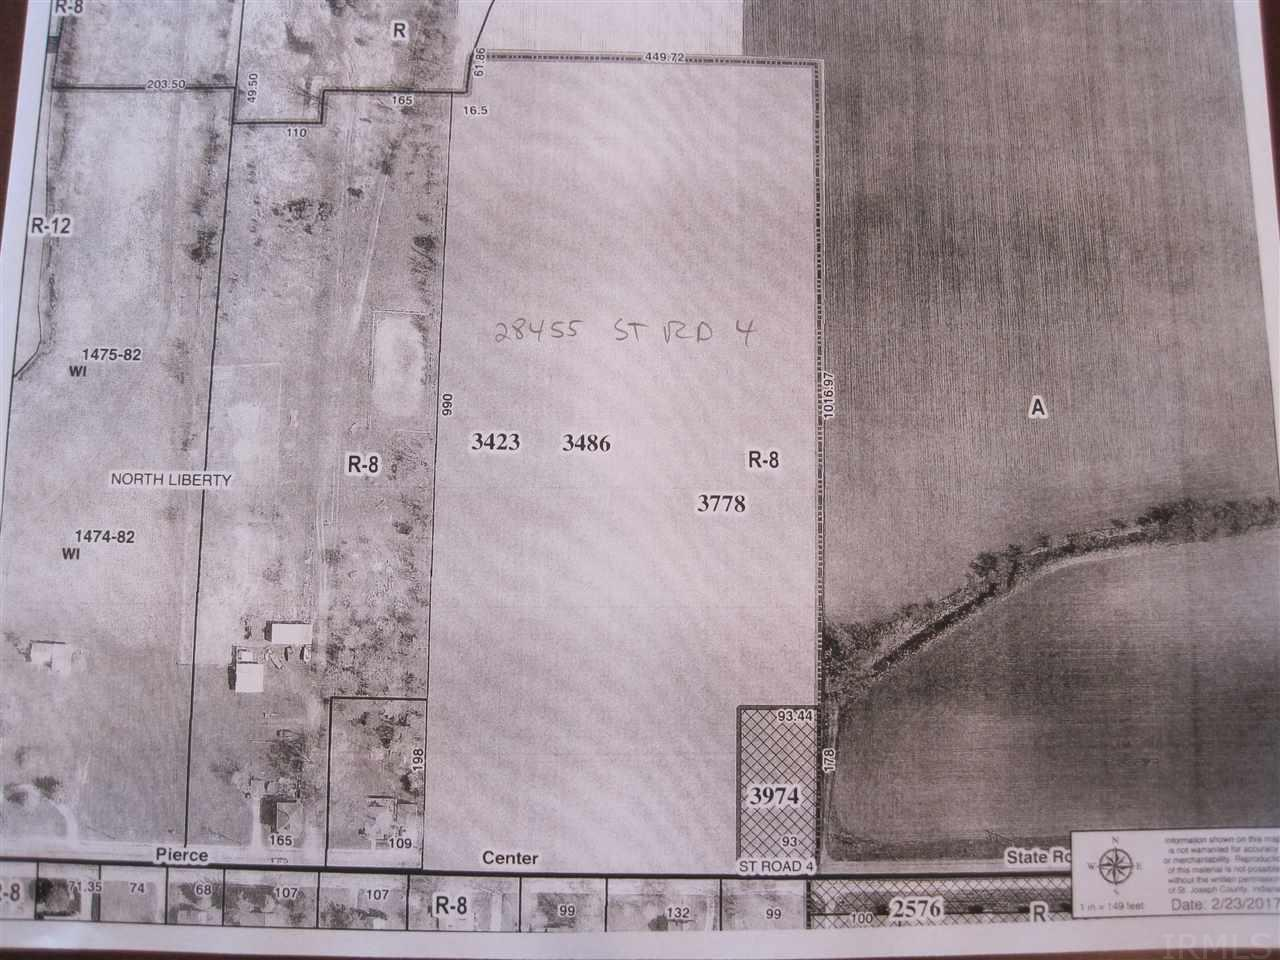 28455 State Road 4, North Liberty, IN 46554